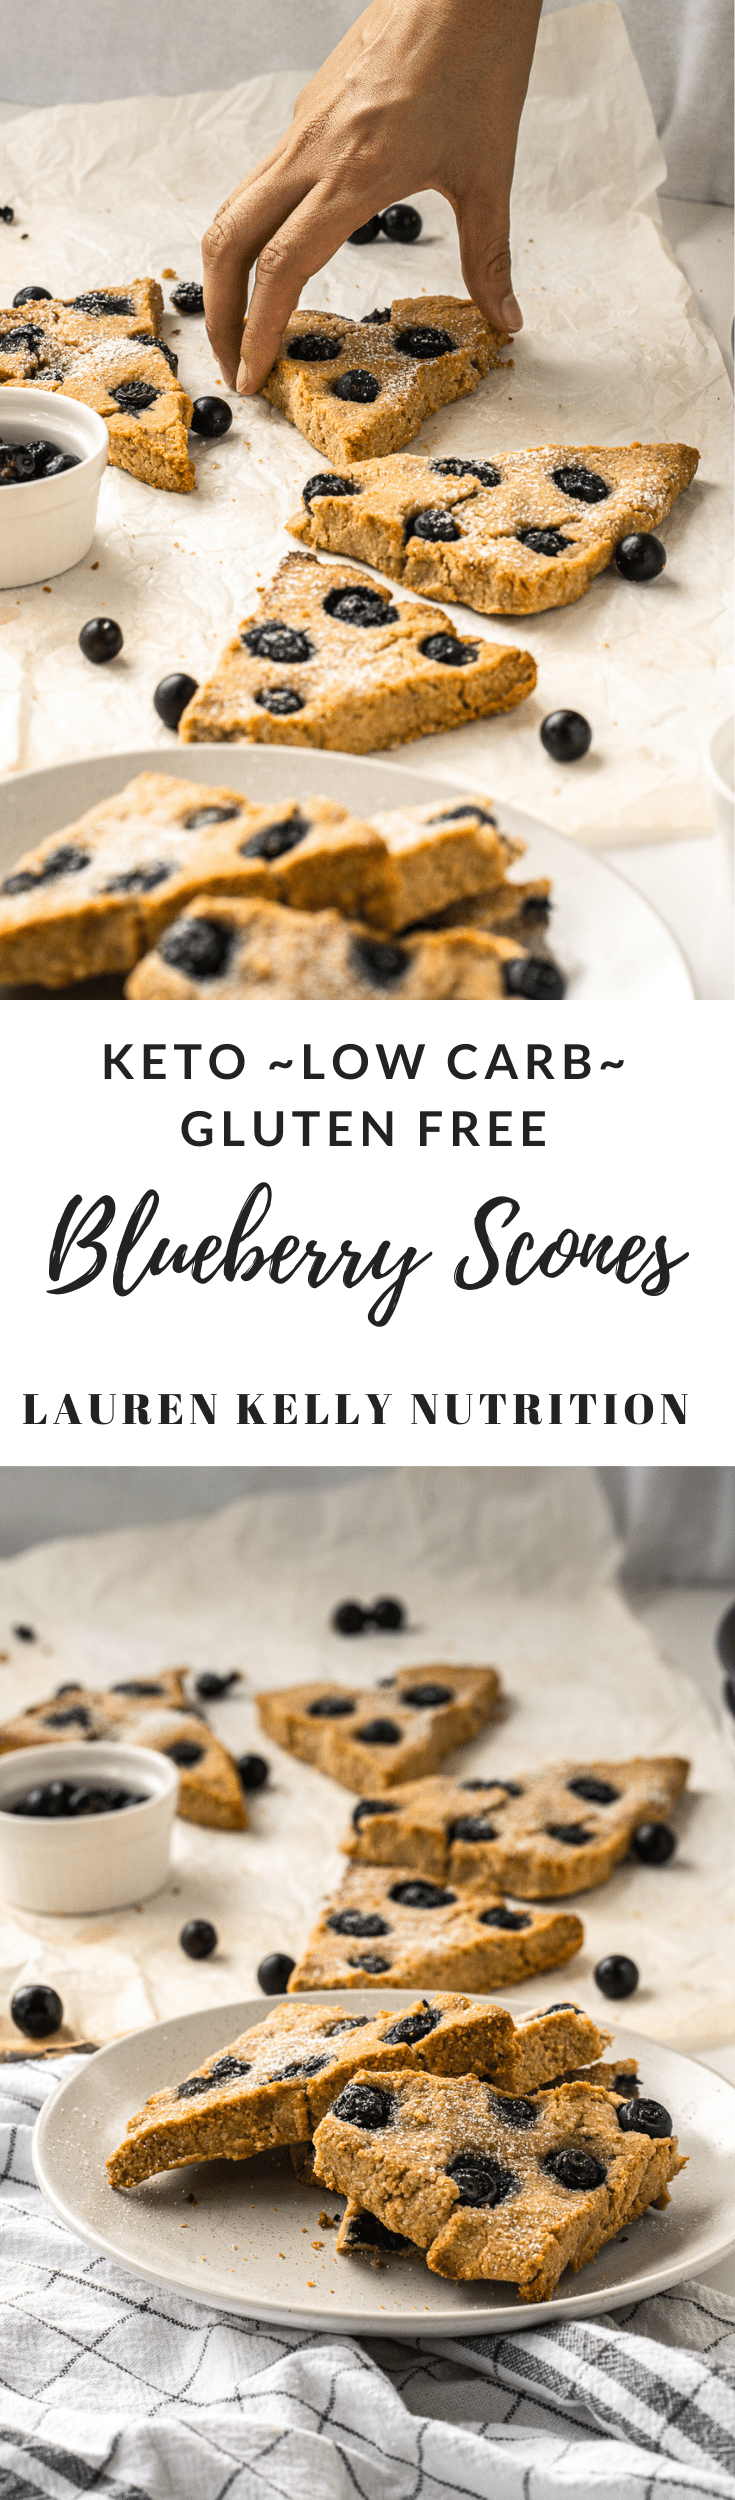 Made with just a few, simple ingredients these delicious Blueberry Scones are gluten free, sugar free, vegan, dairy free, low carb and Keto friendly!